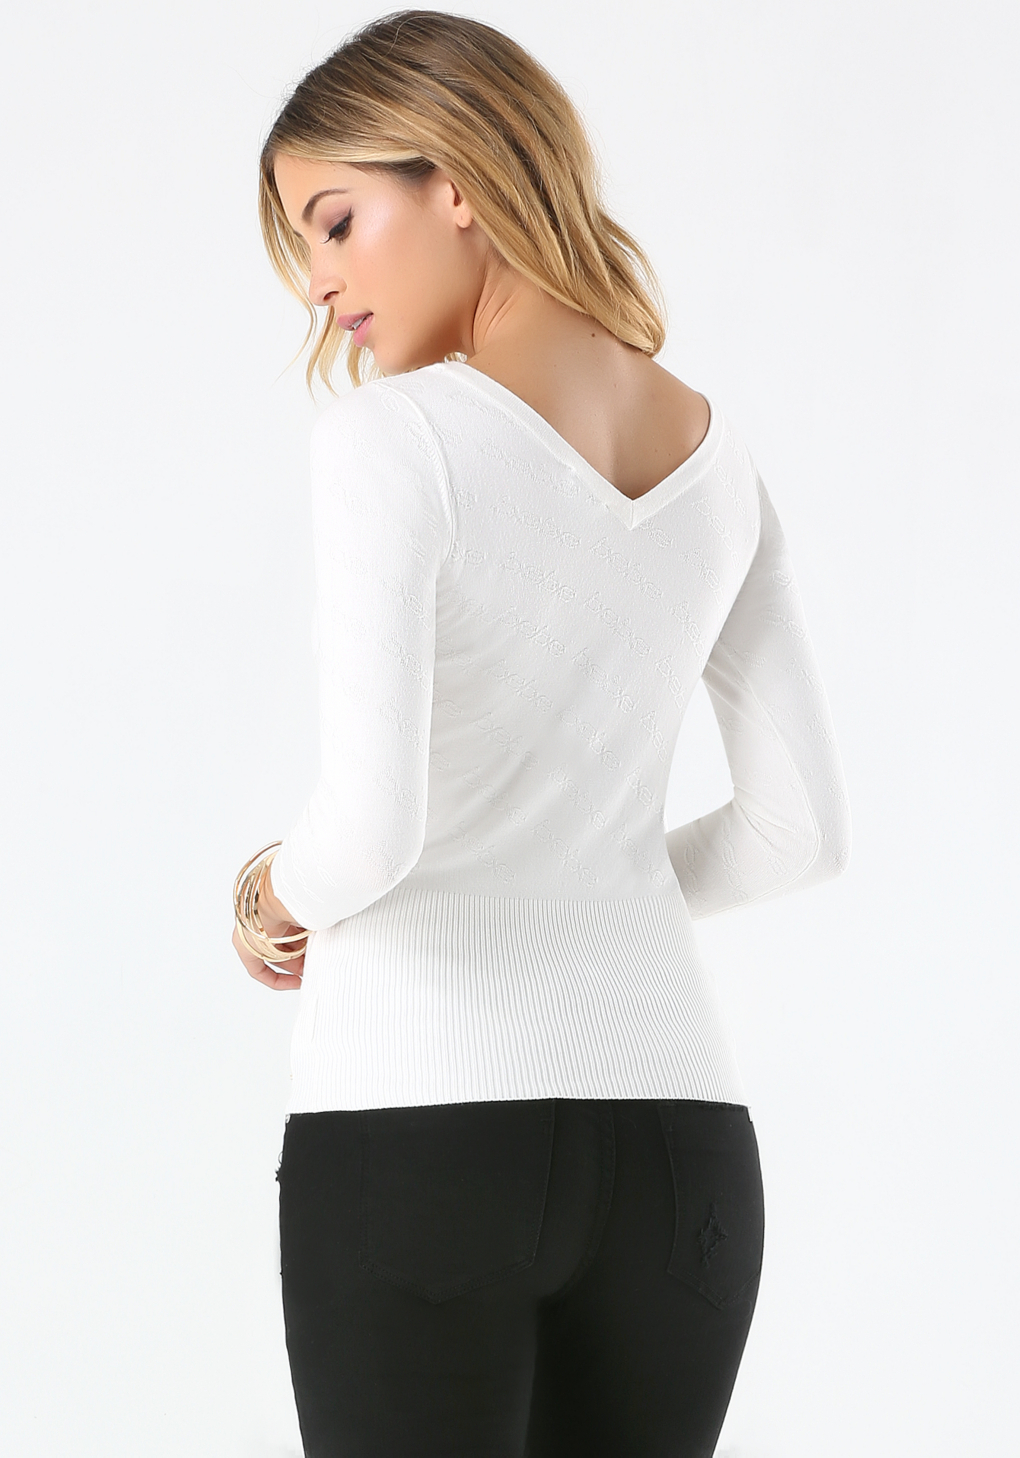 Bebe synthetic allover logo sweater in white lyst for Beb logo